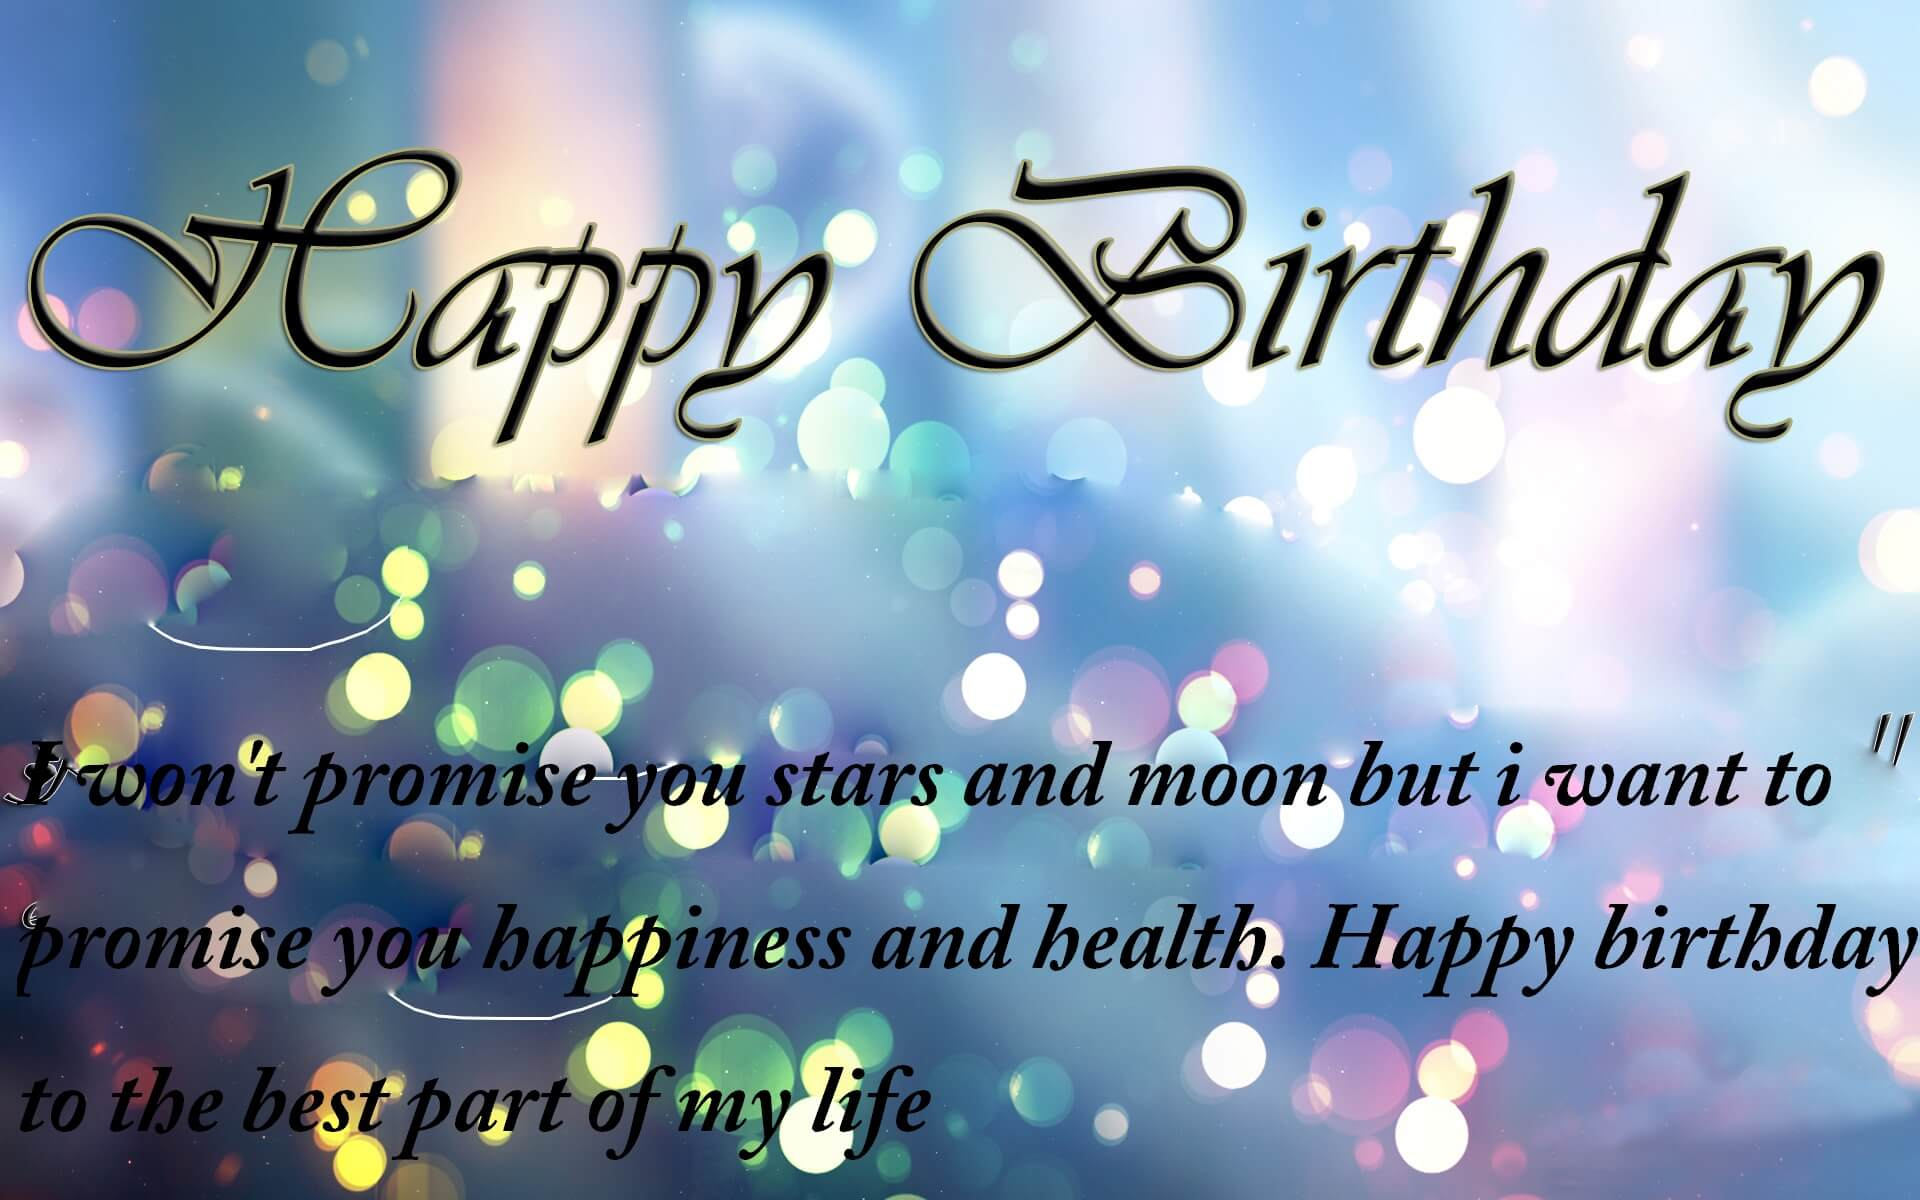 image birthday image ; Happy-birthday-wishe-images